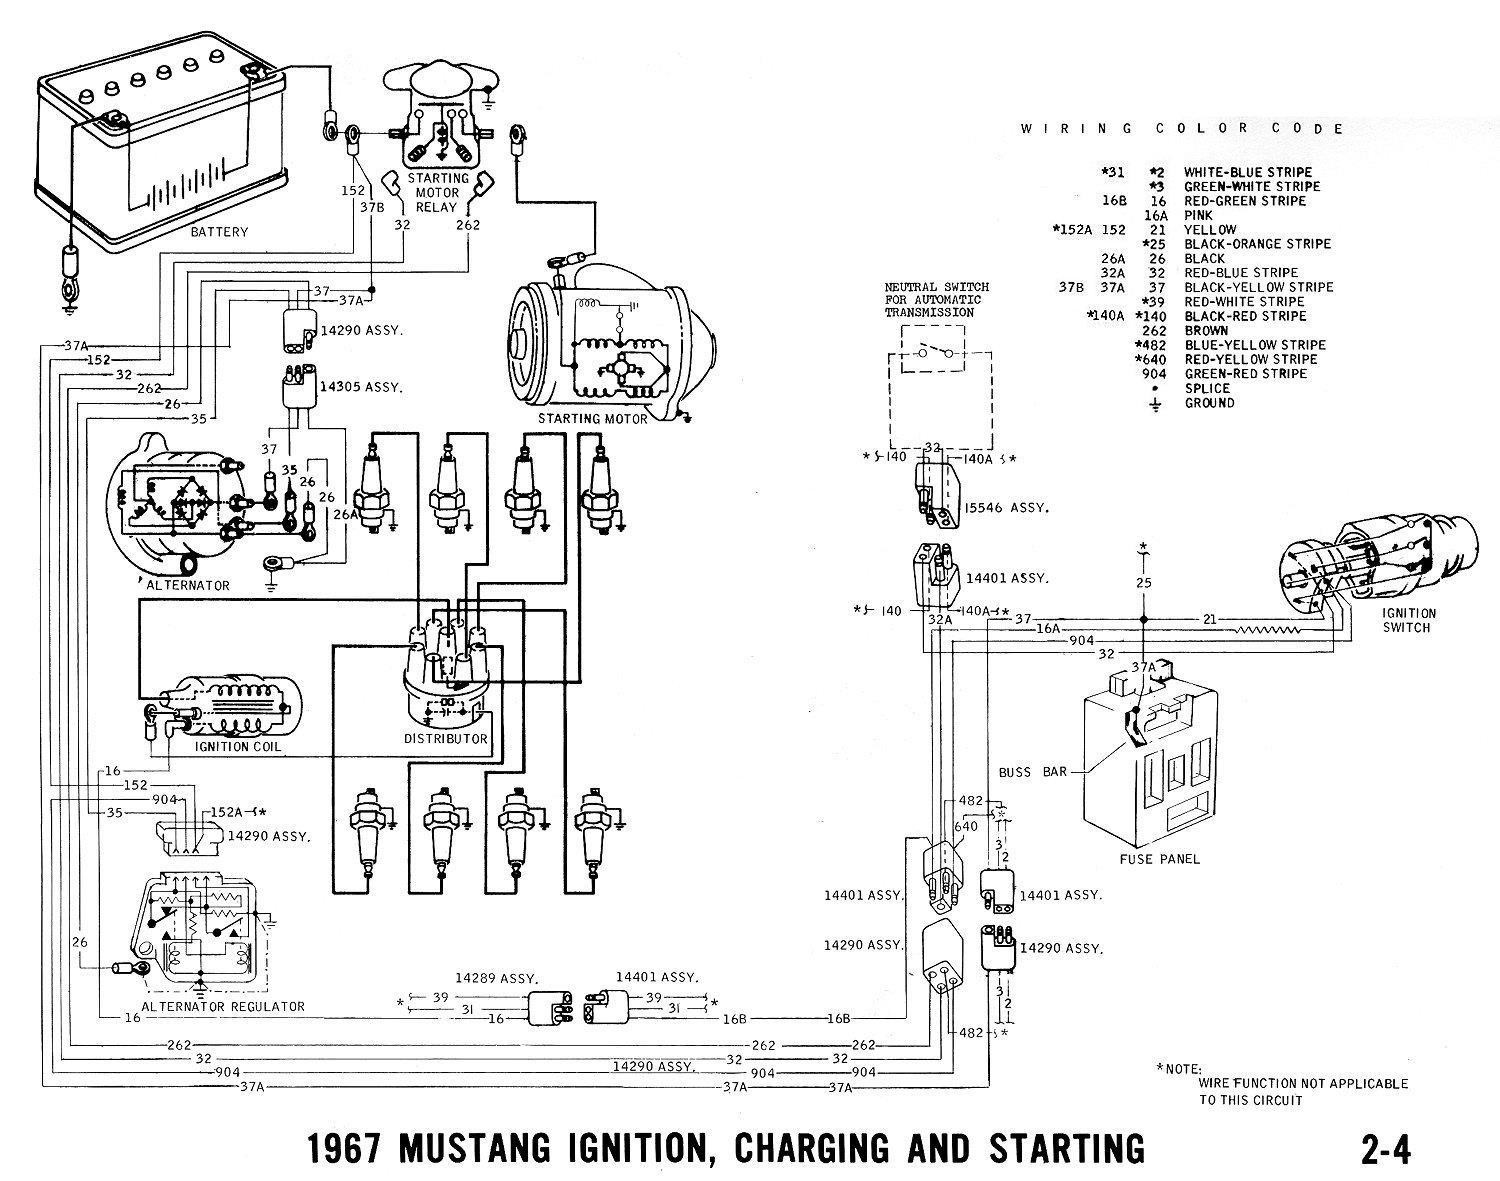 hight resolution of 69 mustang window wiring diagram wiring diagram technic 1968 mustang coil wiring diagram wiring diagram toolbox1968